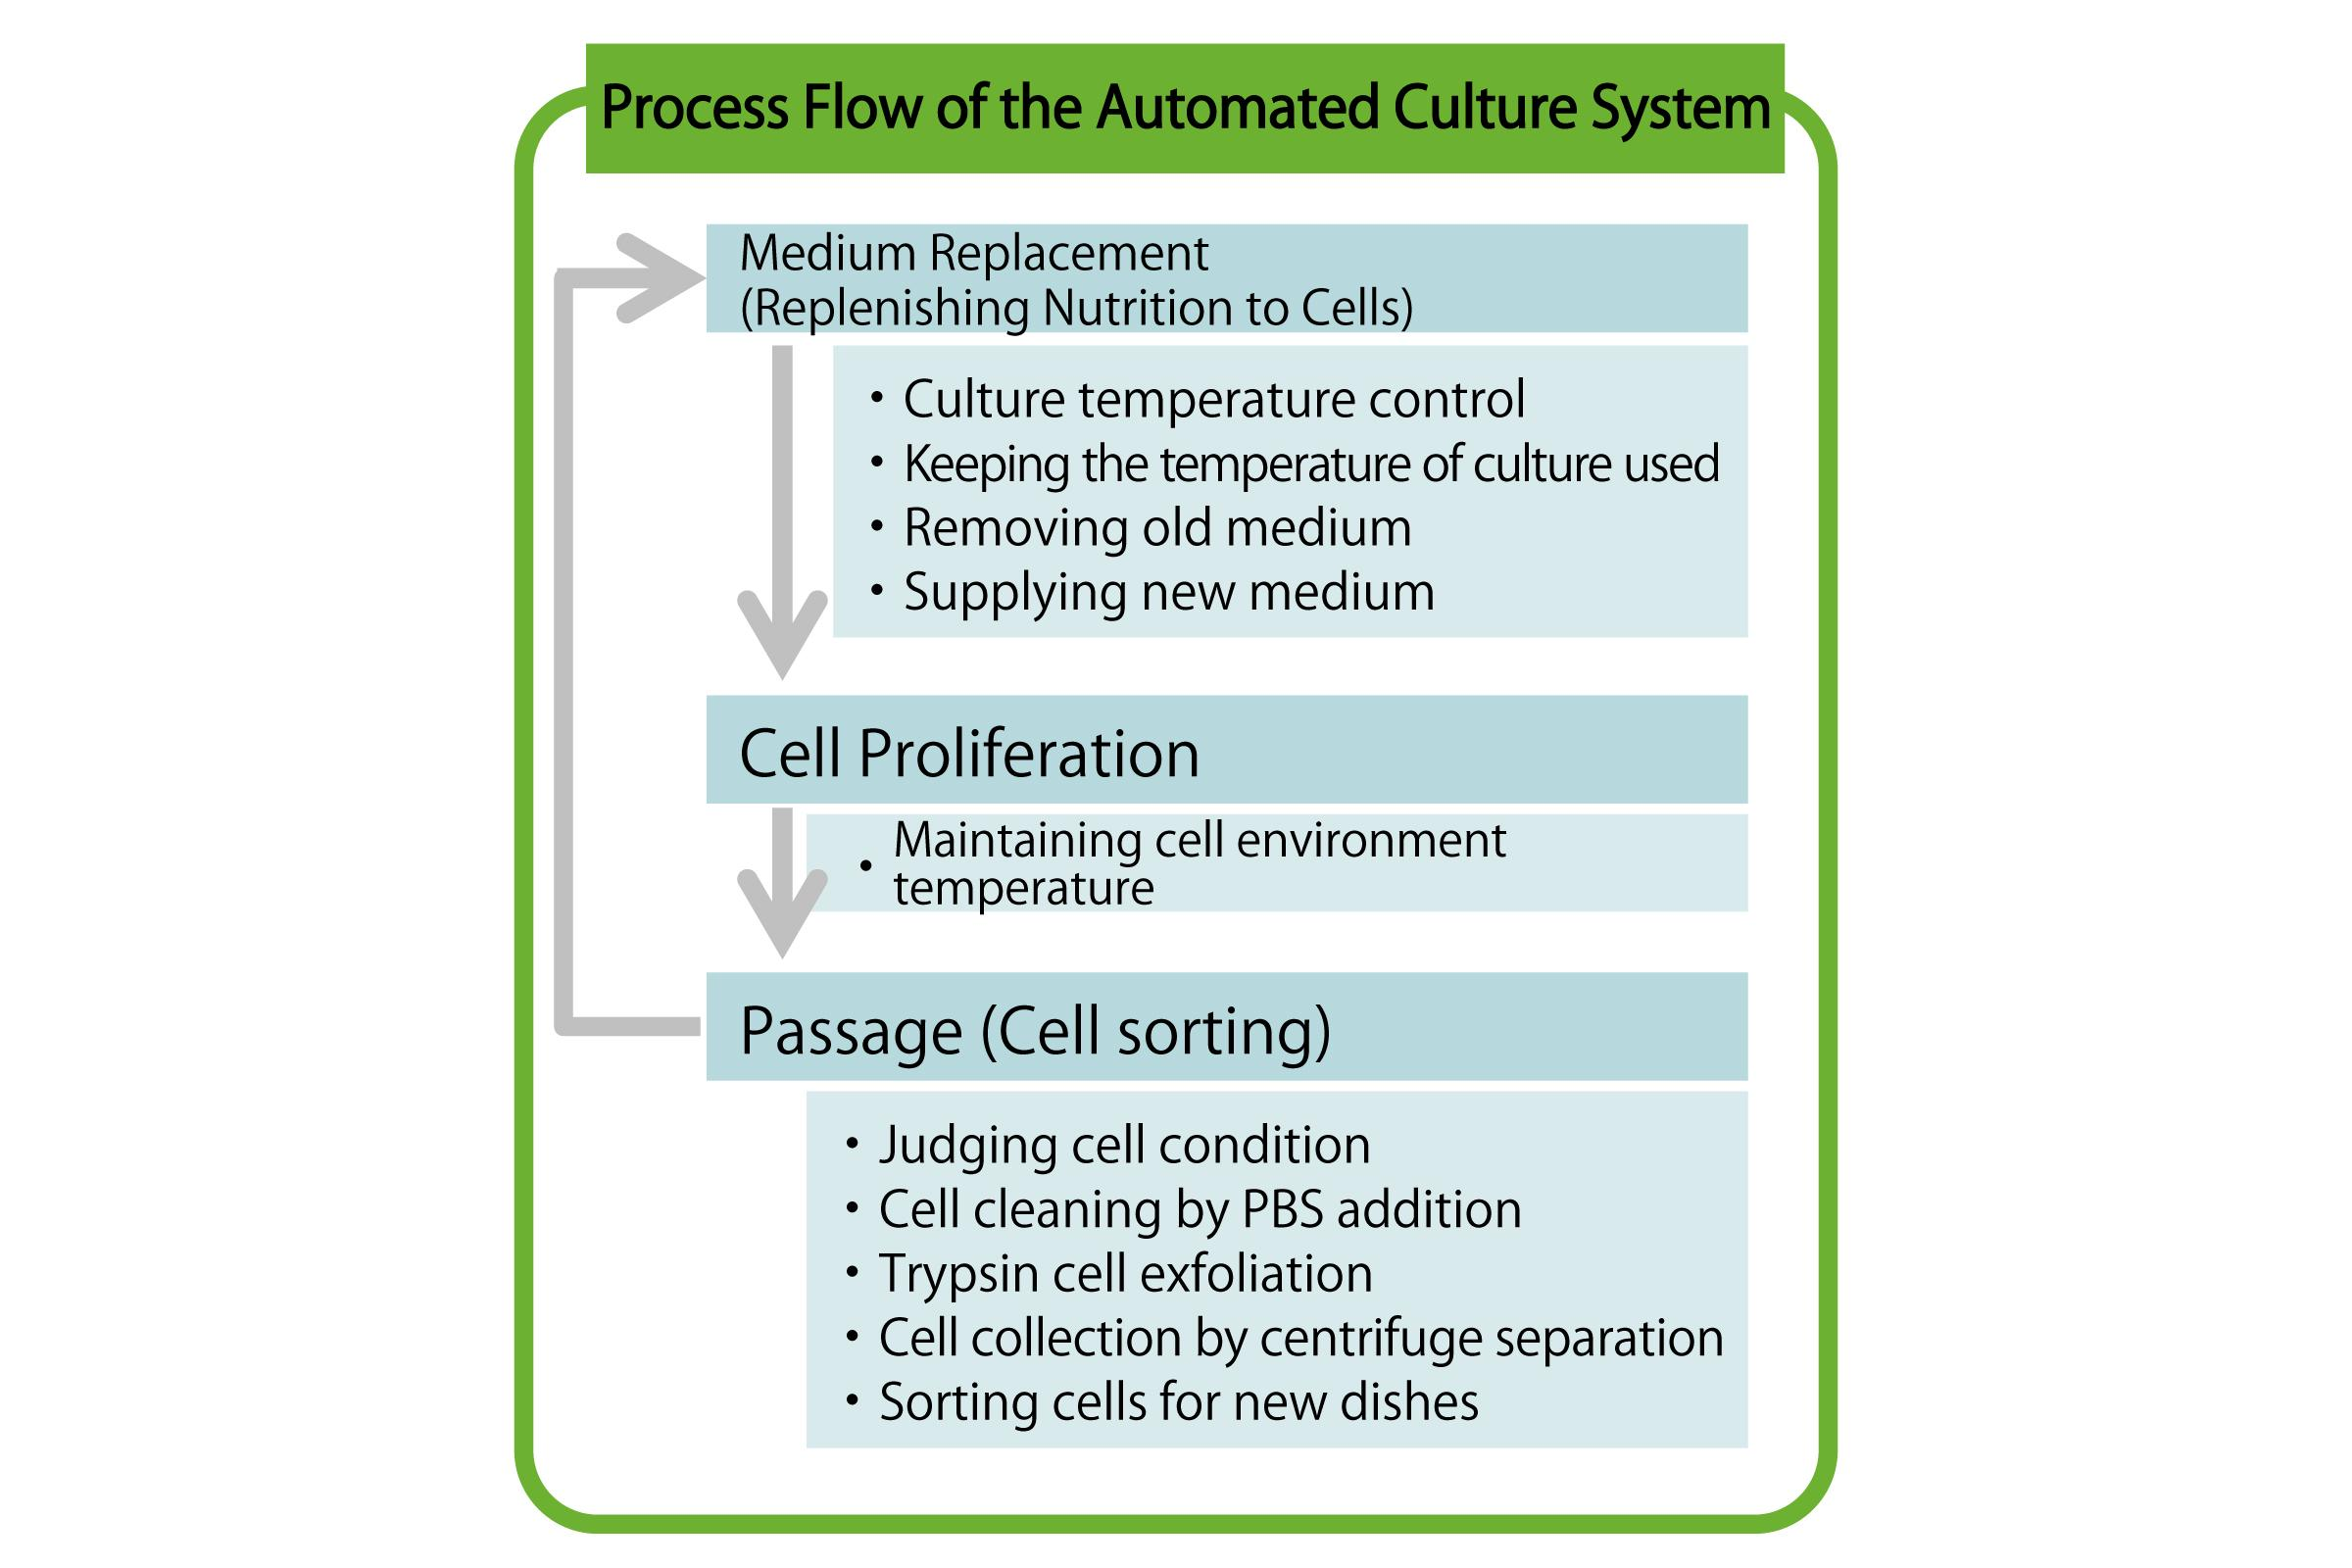 figure: Process Flow of the Automated Culture System